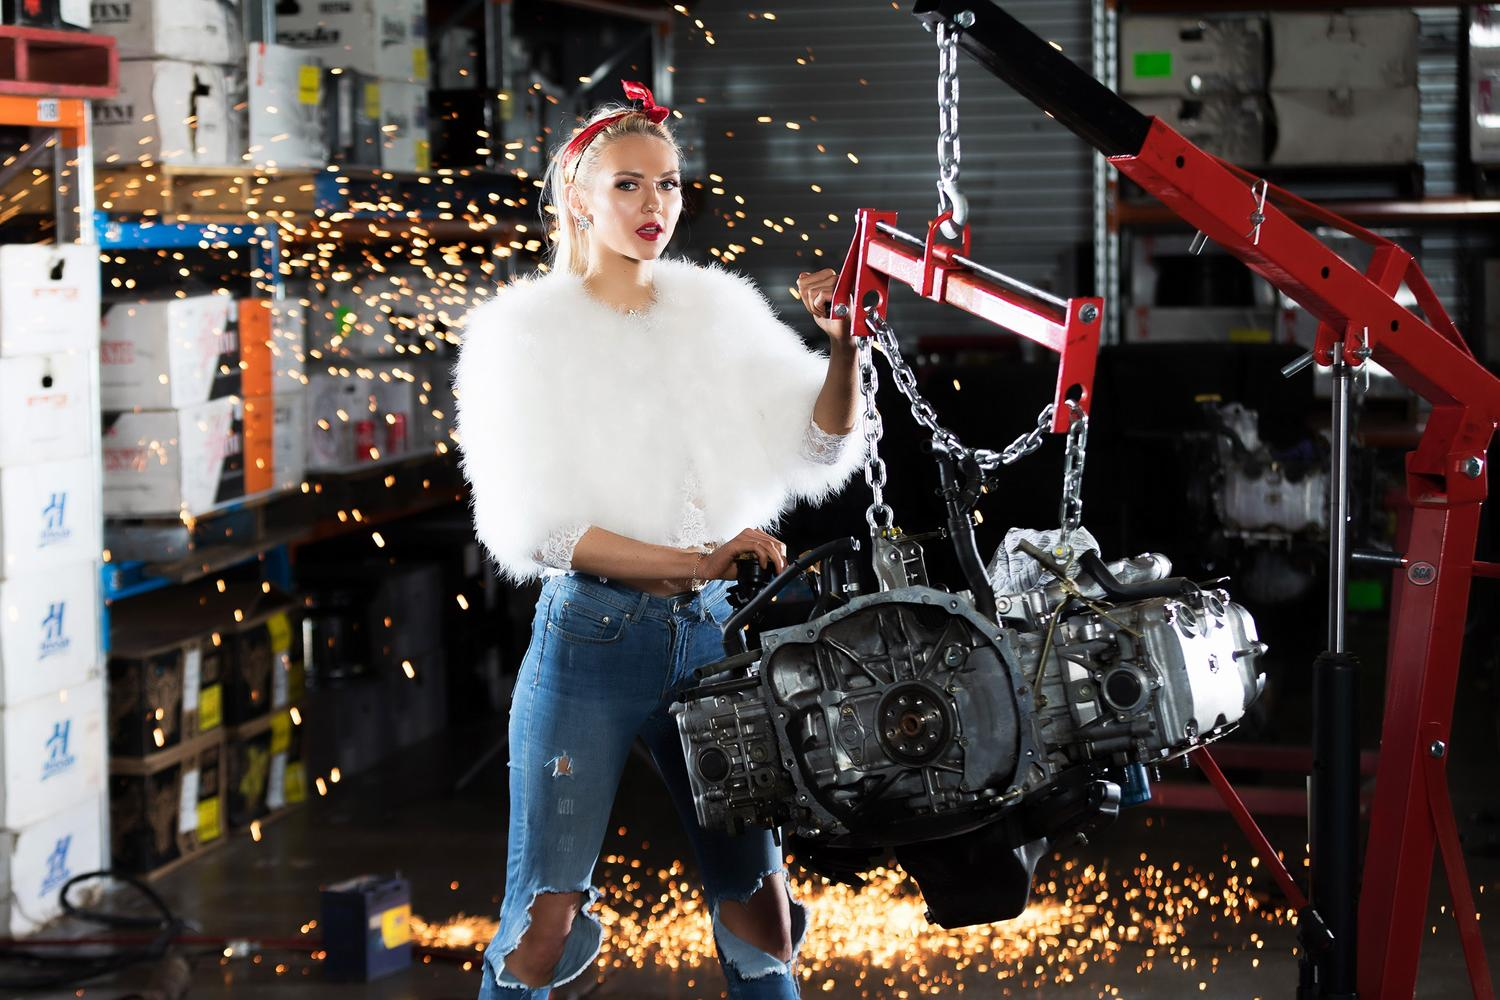 Women posing with car engine in garage